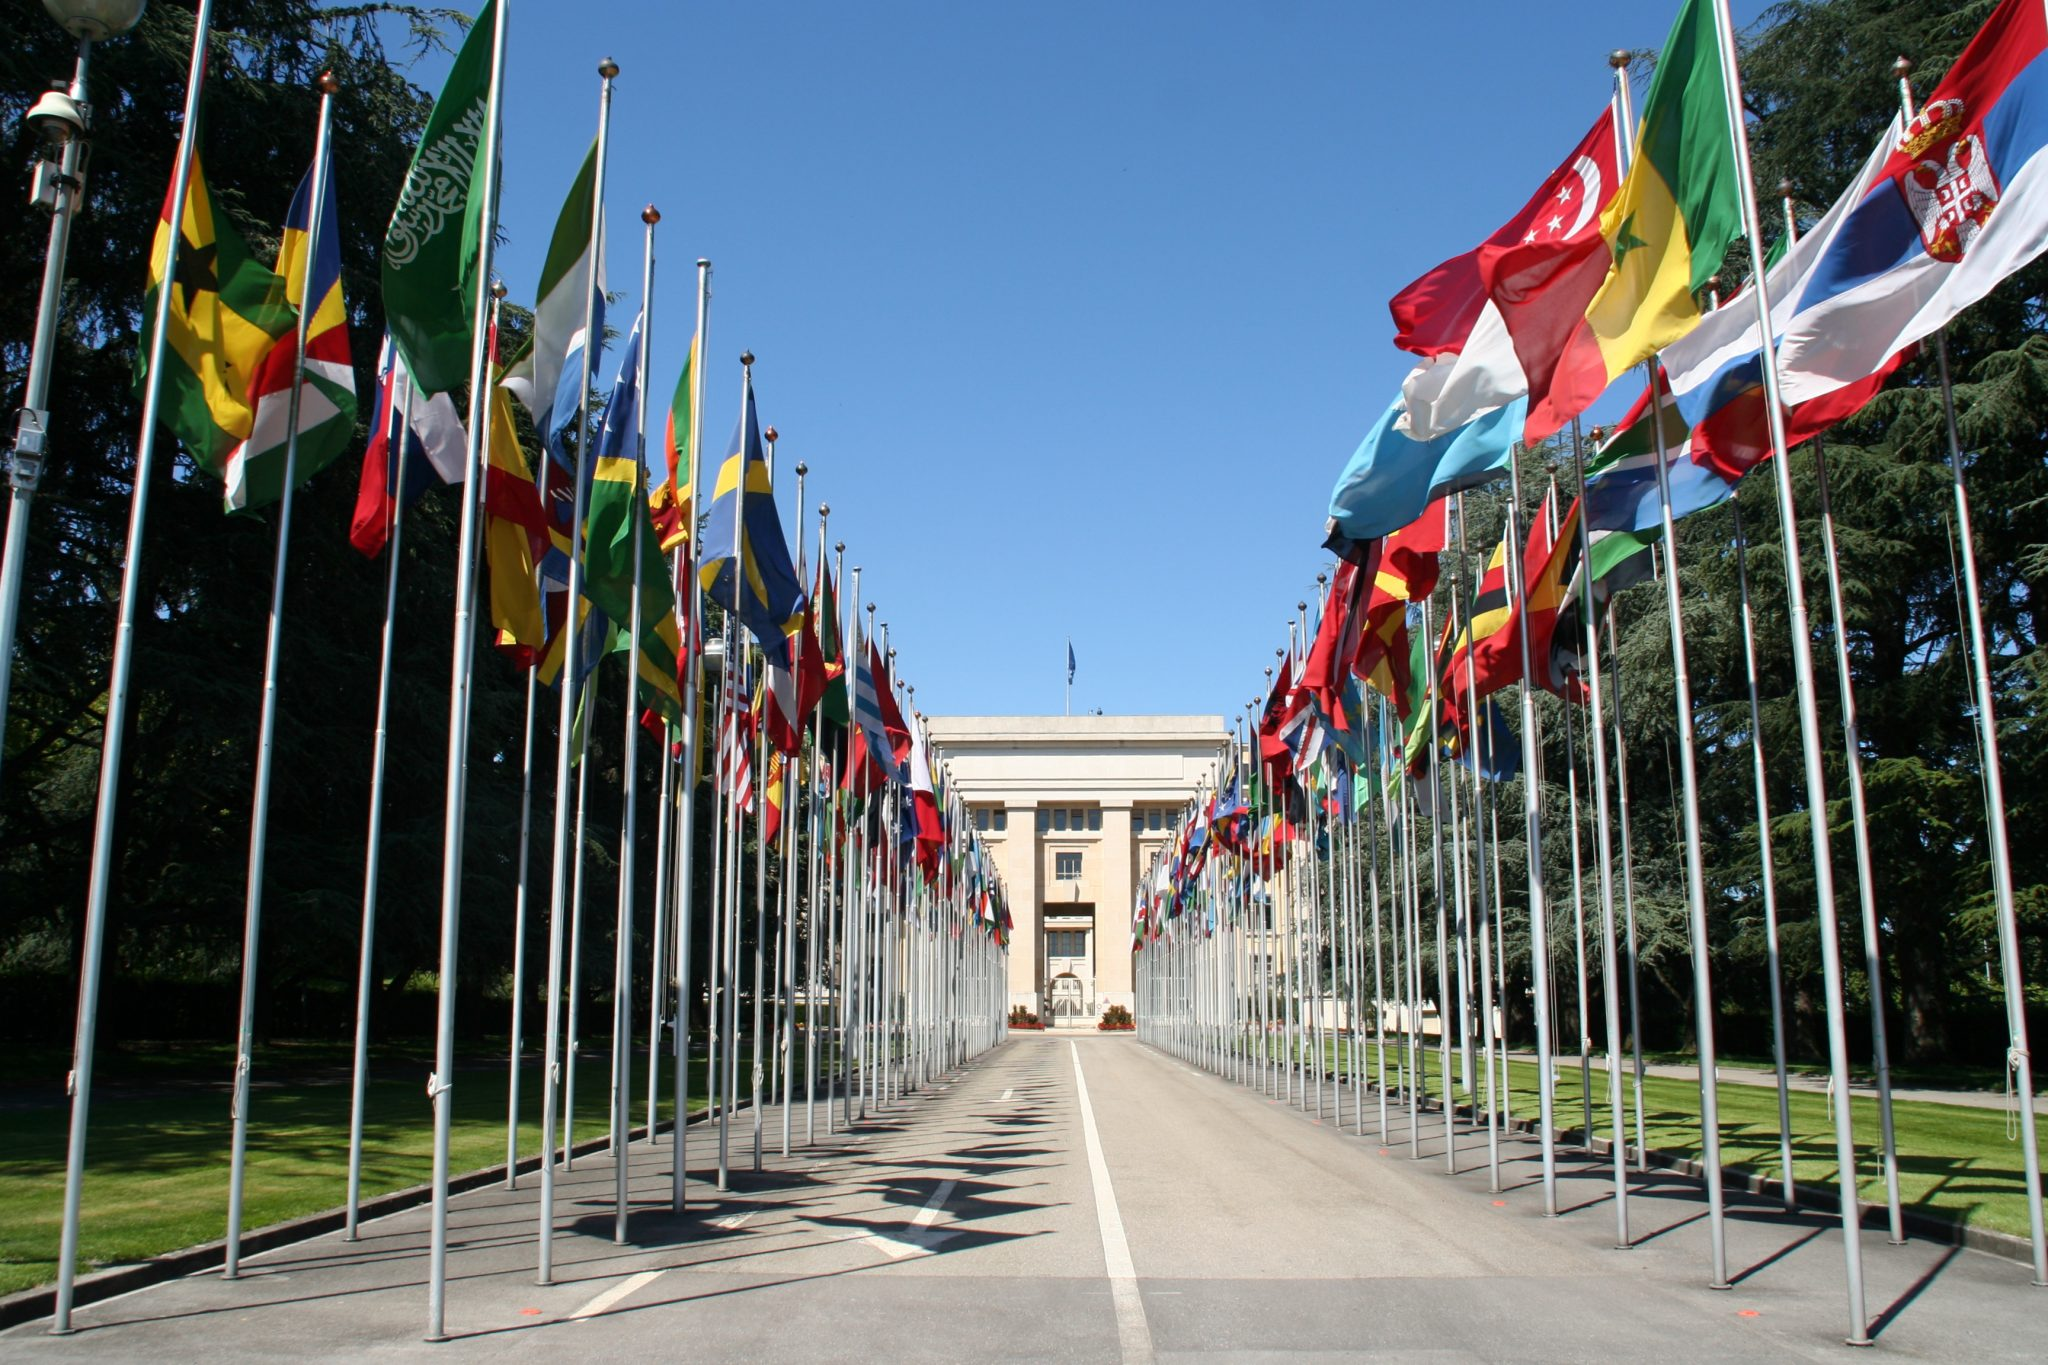 The UN building in Geneva